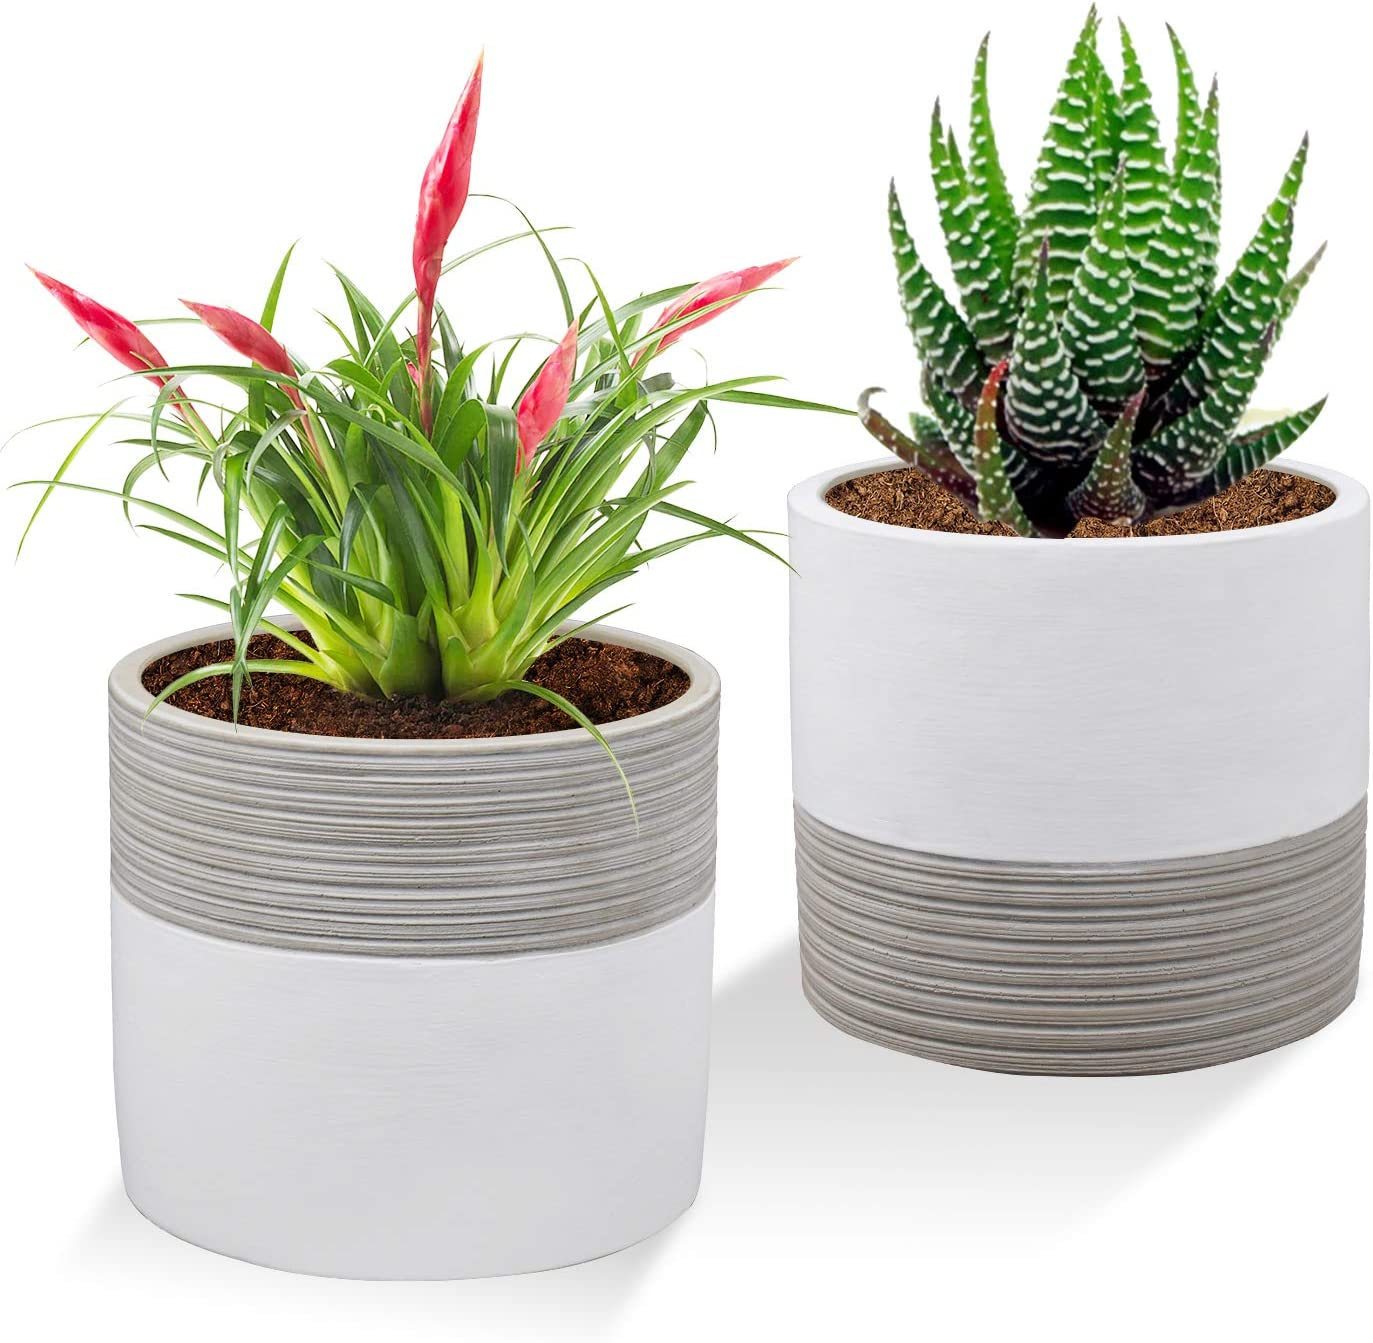 Brief Succulent Pots 5 Inch Diameter 2 Pack Modern Cement Cactus Flower Aloe Snake Plant Planter Container With Drainage Hole White P013 Kitchen Dining